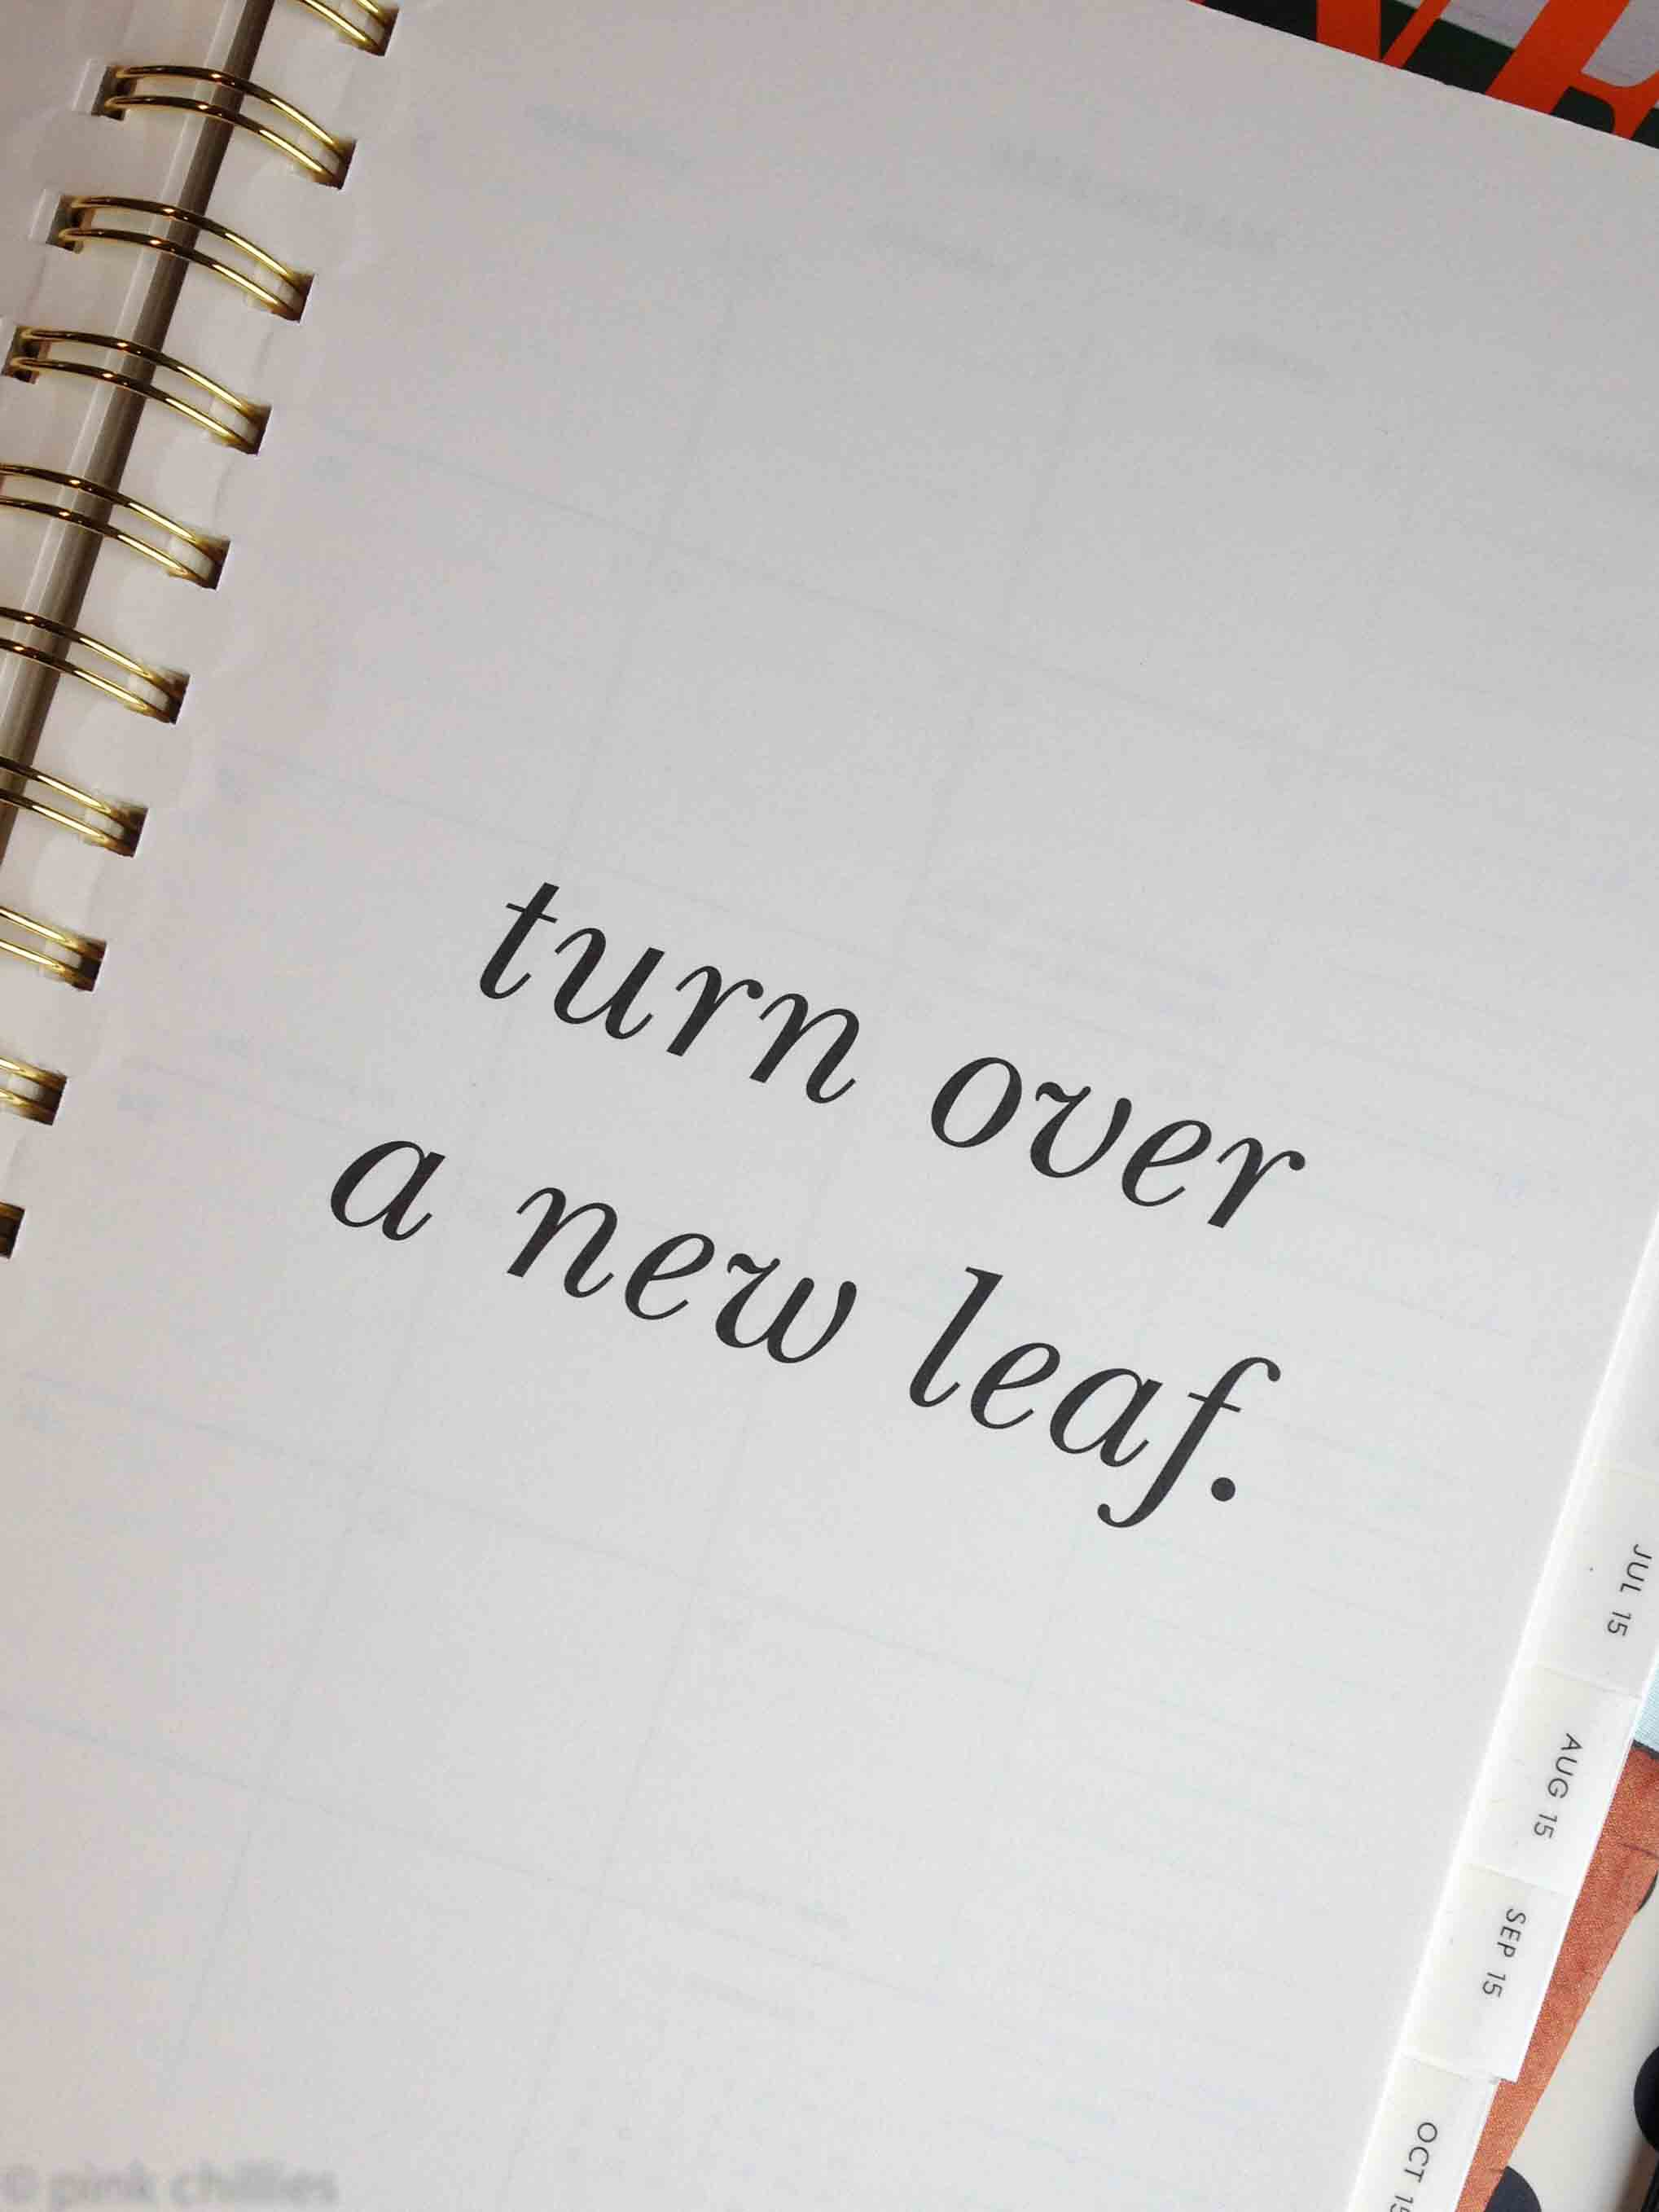 turn over a new leaf